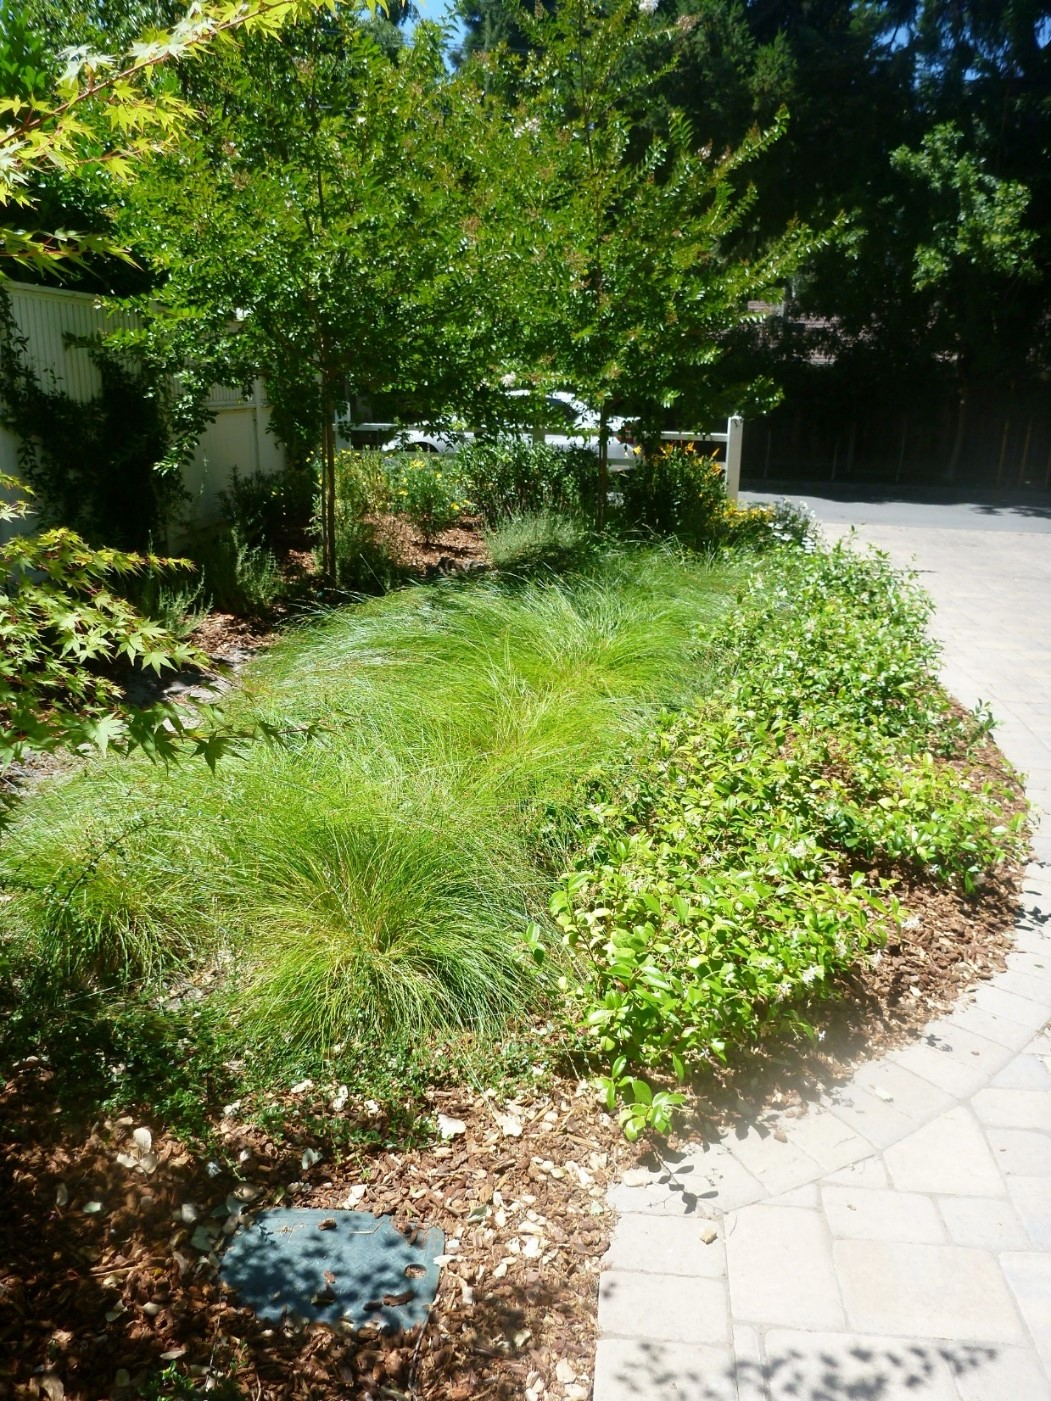 Bioretention treating runoff from residences in a private street in Contra Costa County